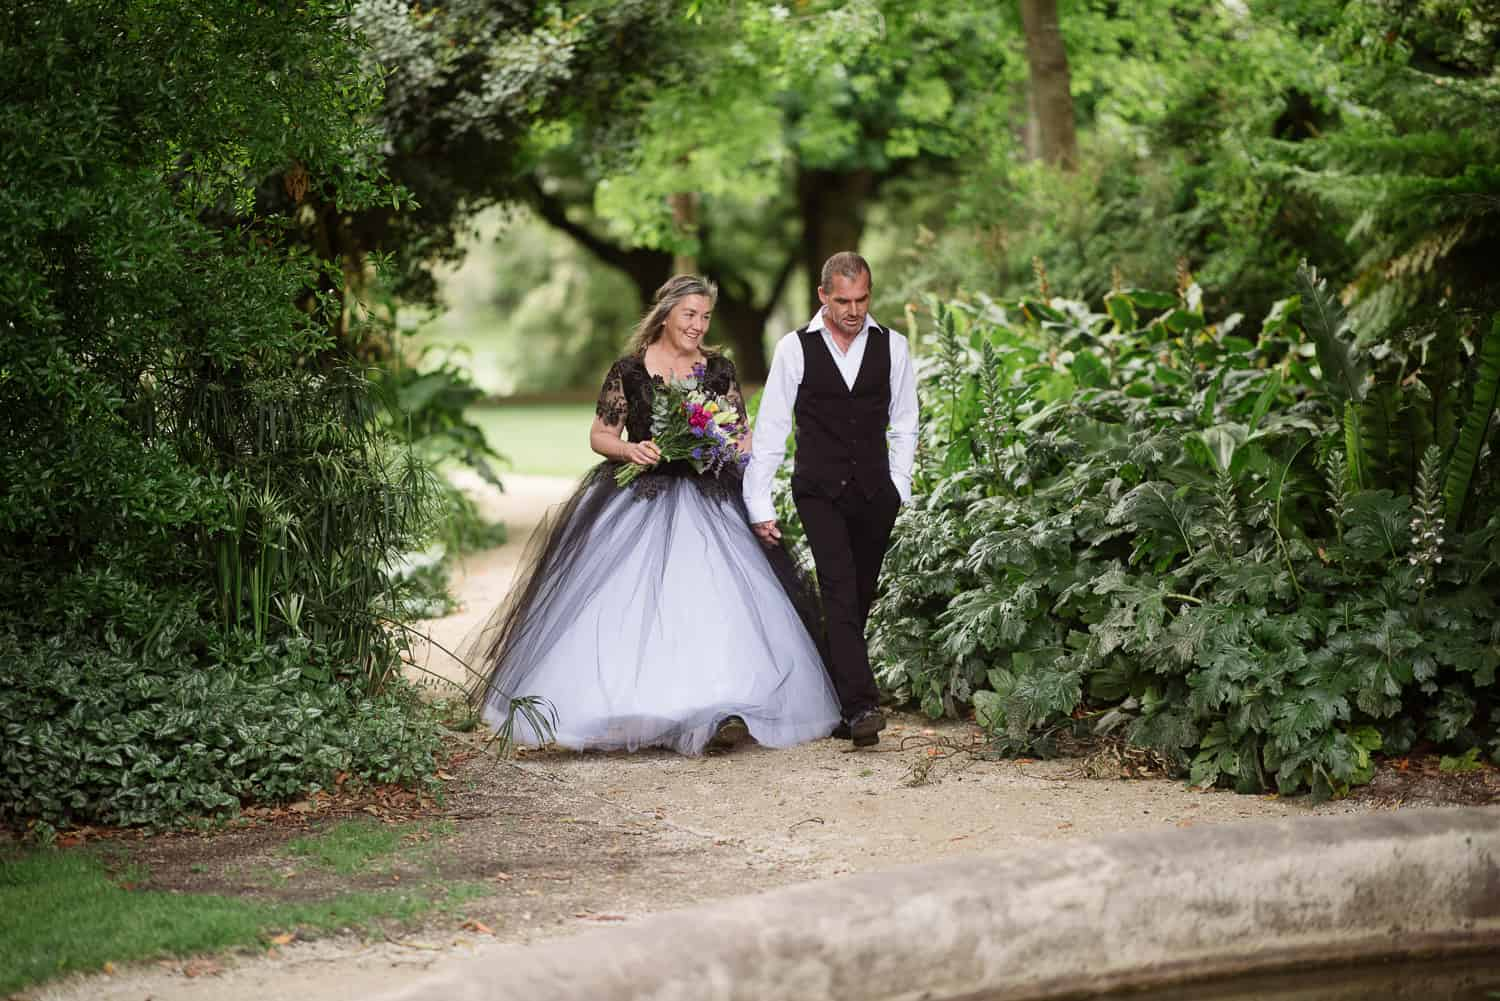 Bec and Ted enetering their wedding in Colac Botanic Gardens